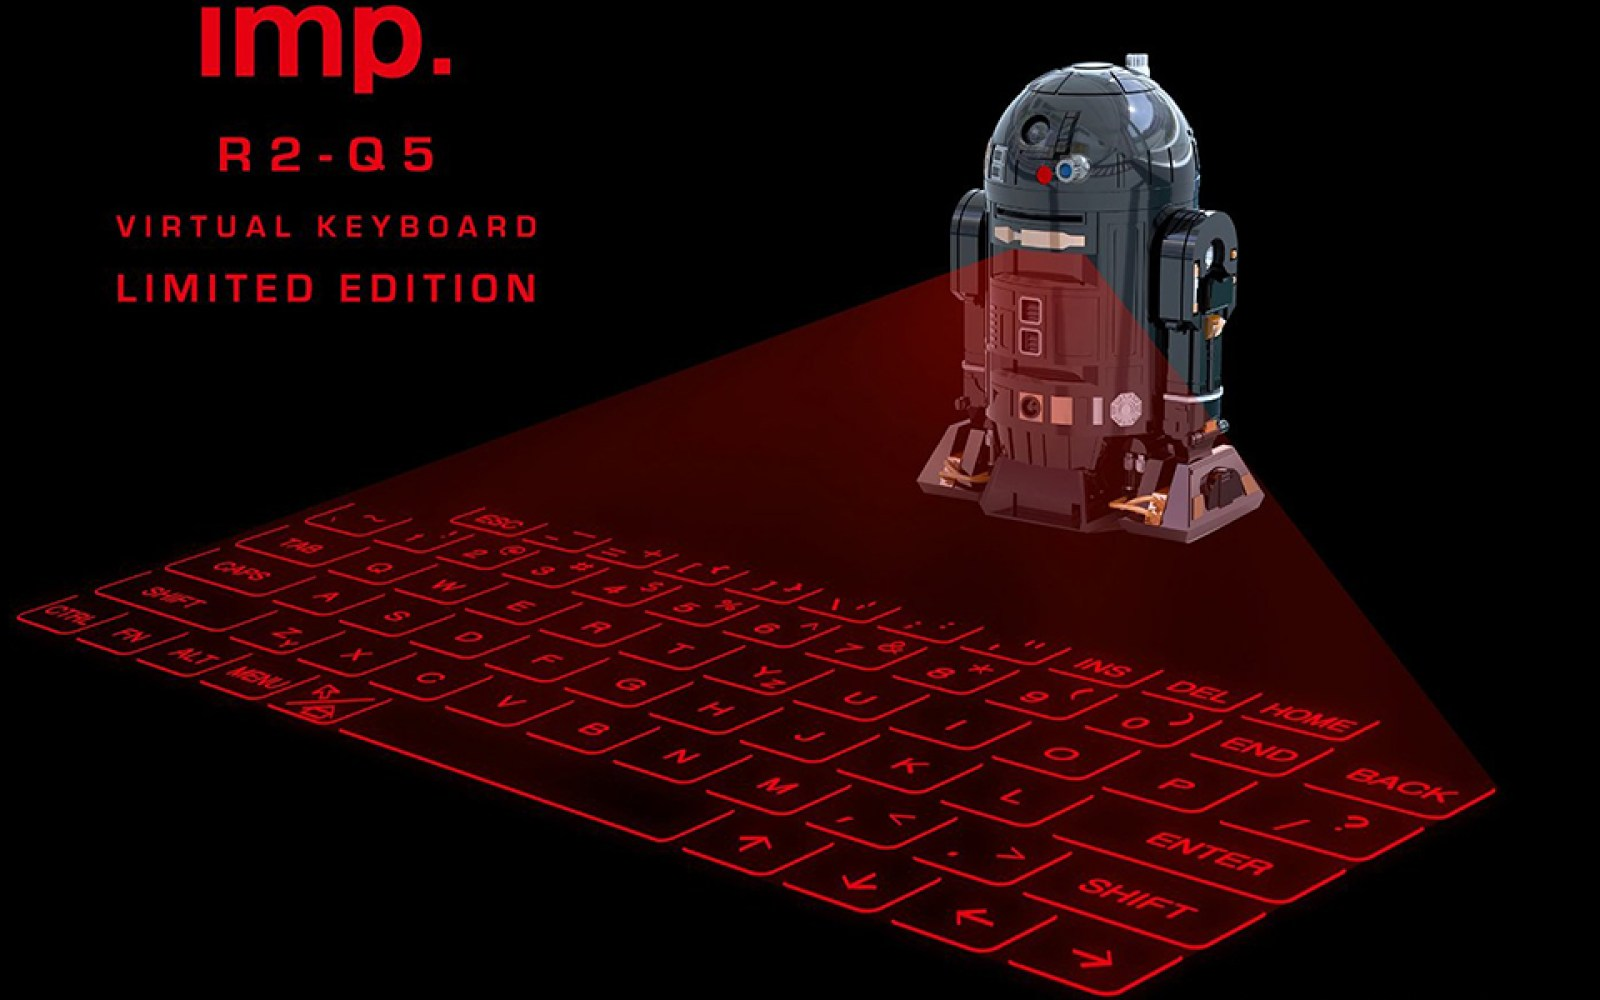 A New Hope: Japanese accessory maker announces follow-up to the wildly popular R2-D2 virtual keyboard